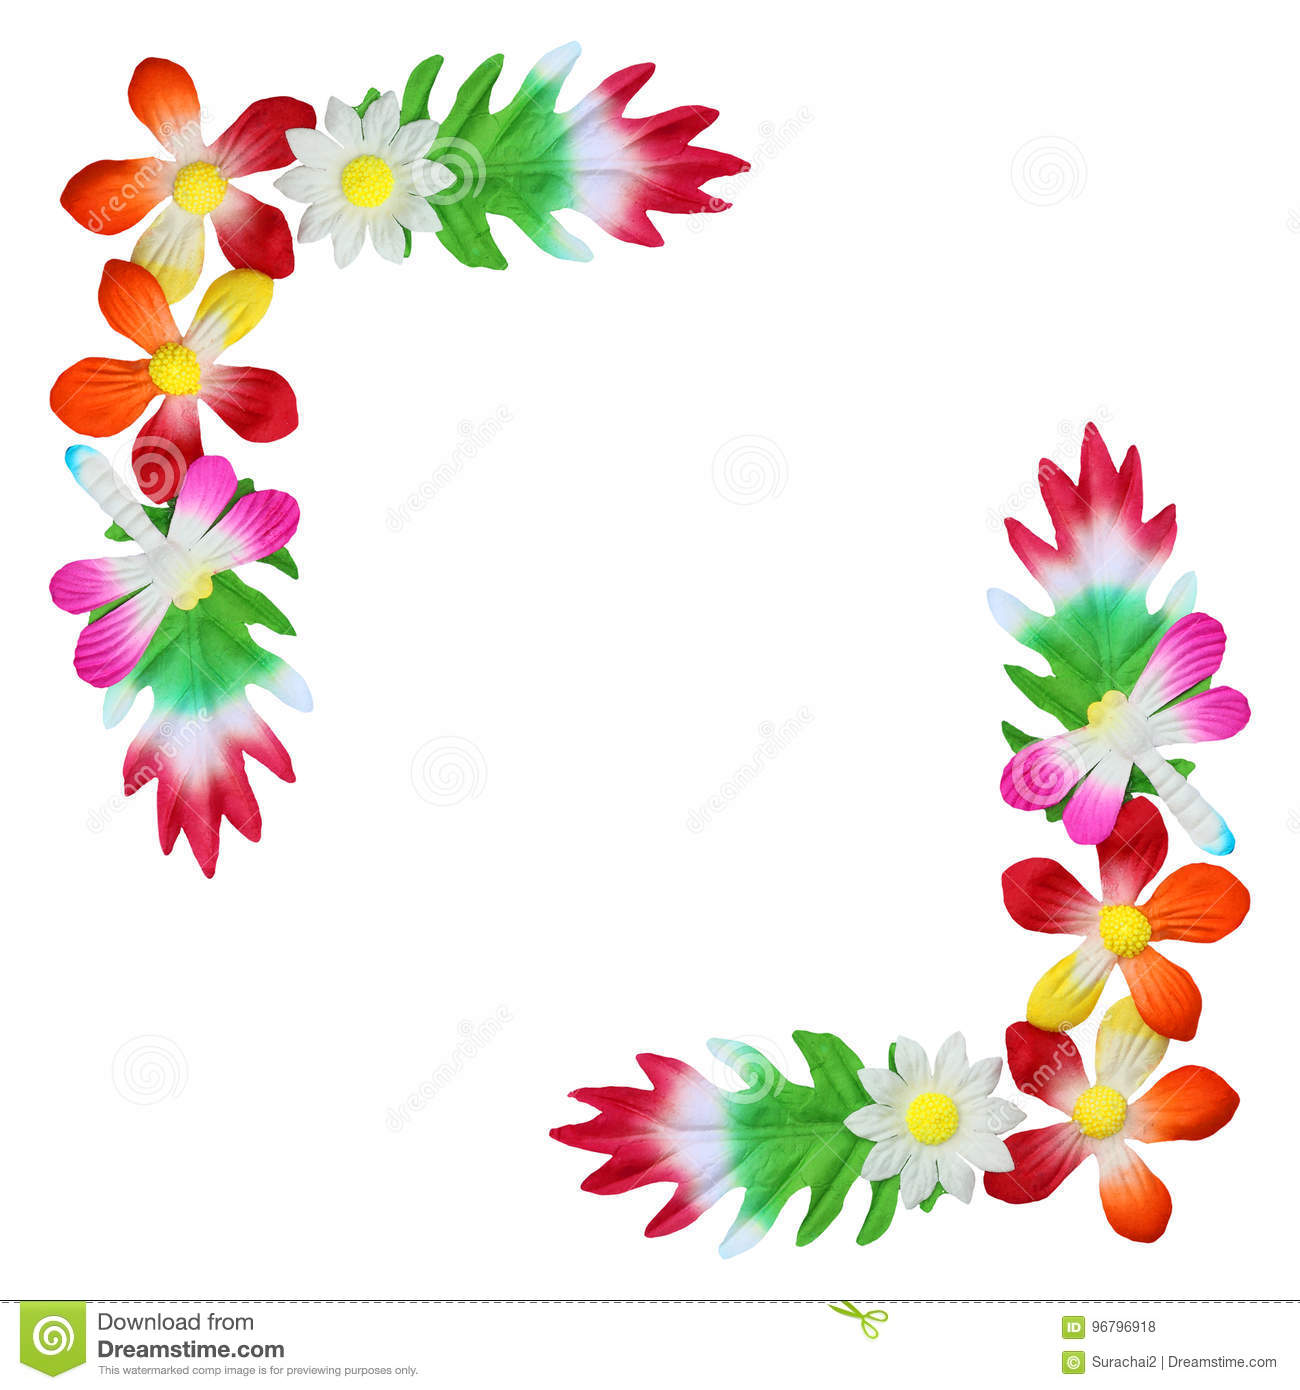 Flowers made of colorful paper used for decoration